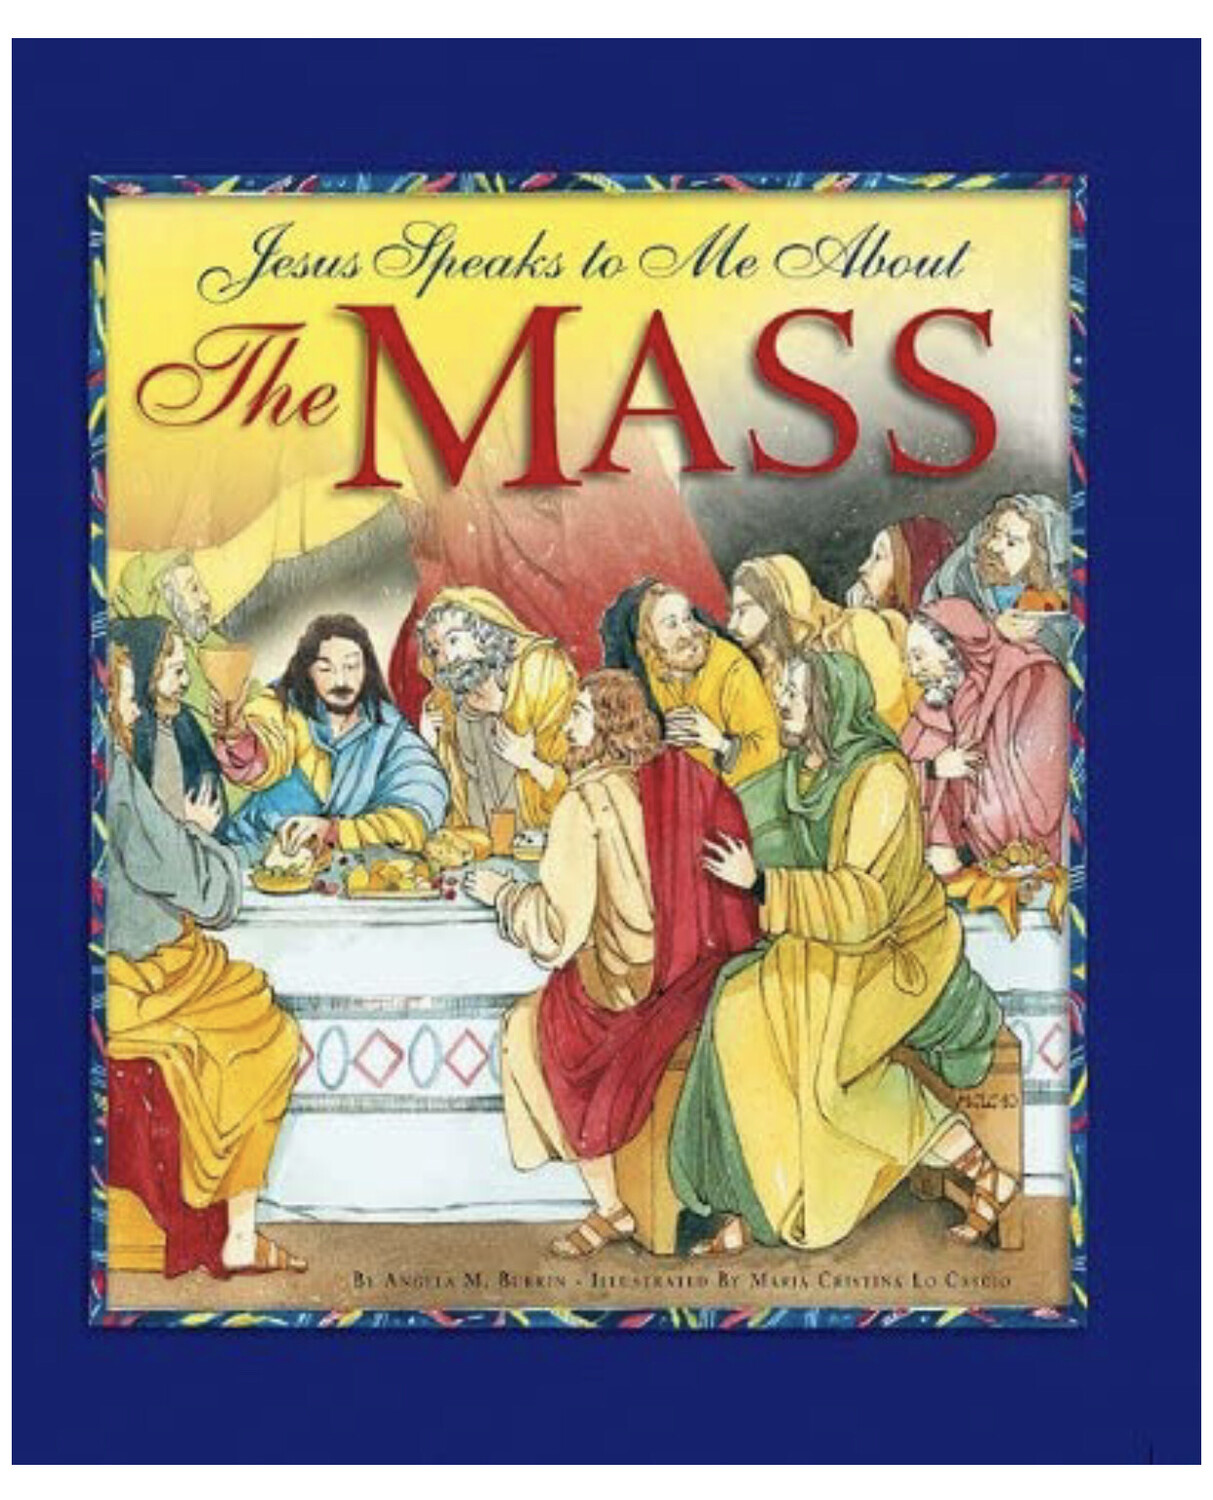 Jesus Speaks to Me About the Mass By Angela M Burrin and Maria Cristina Lo Cascio